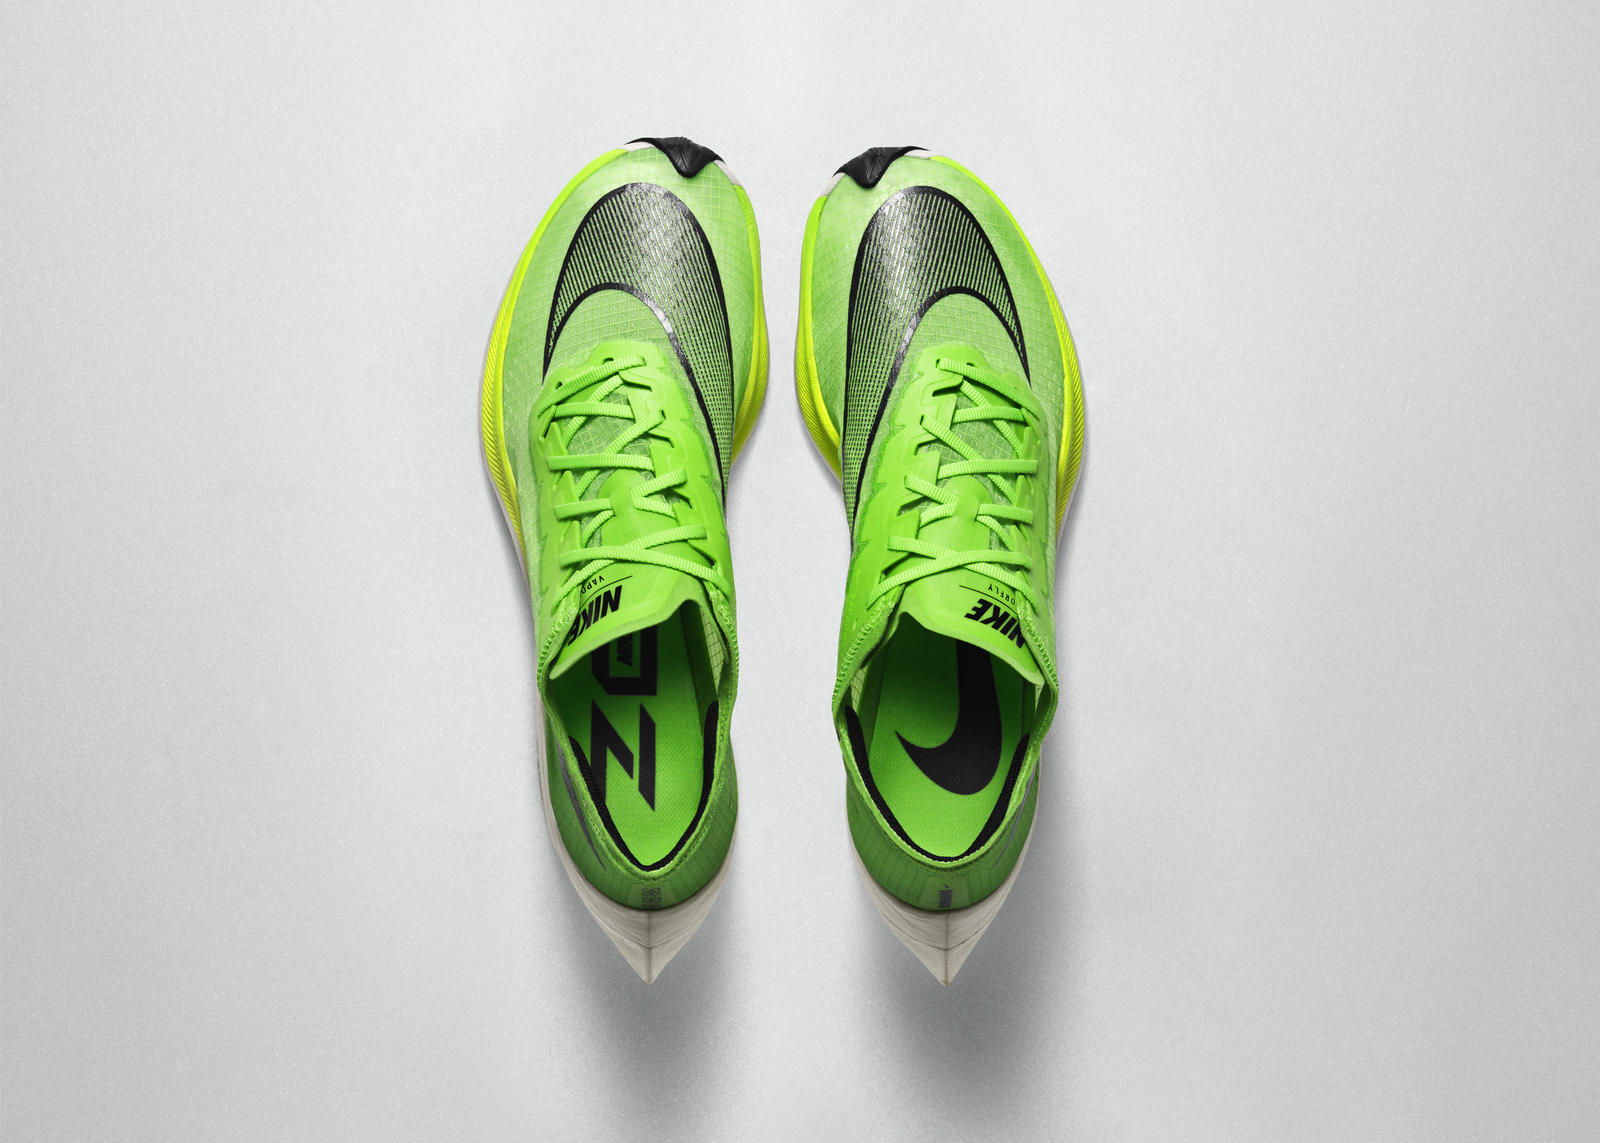 Nike ZoomX Vaporfly Next% Official Images and Release Info  15